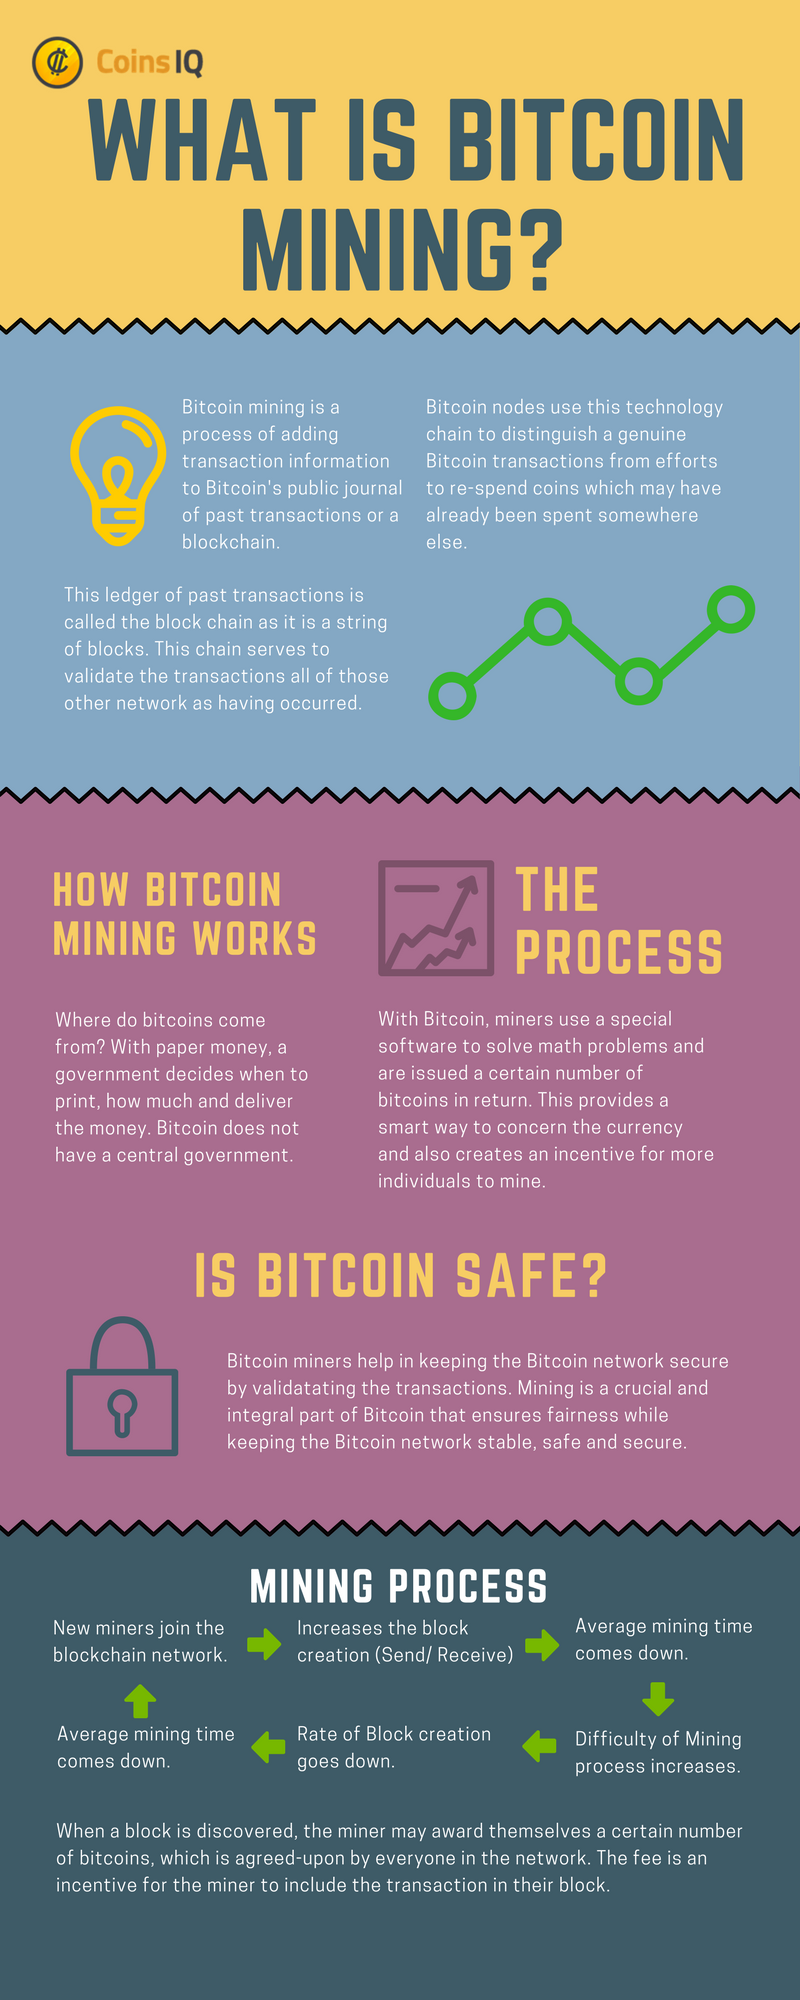 Pin by Troy Austria on Cryptocurrency | Bitcoin mining